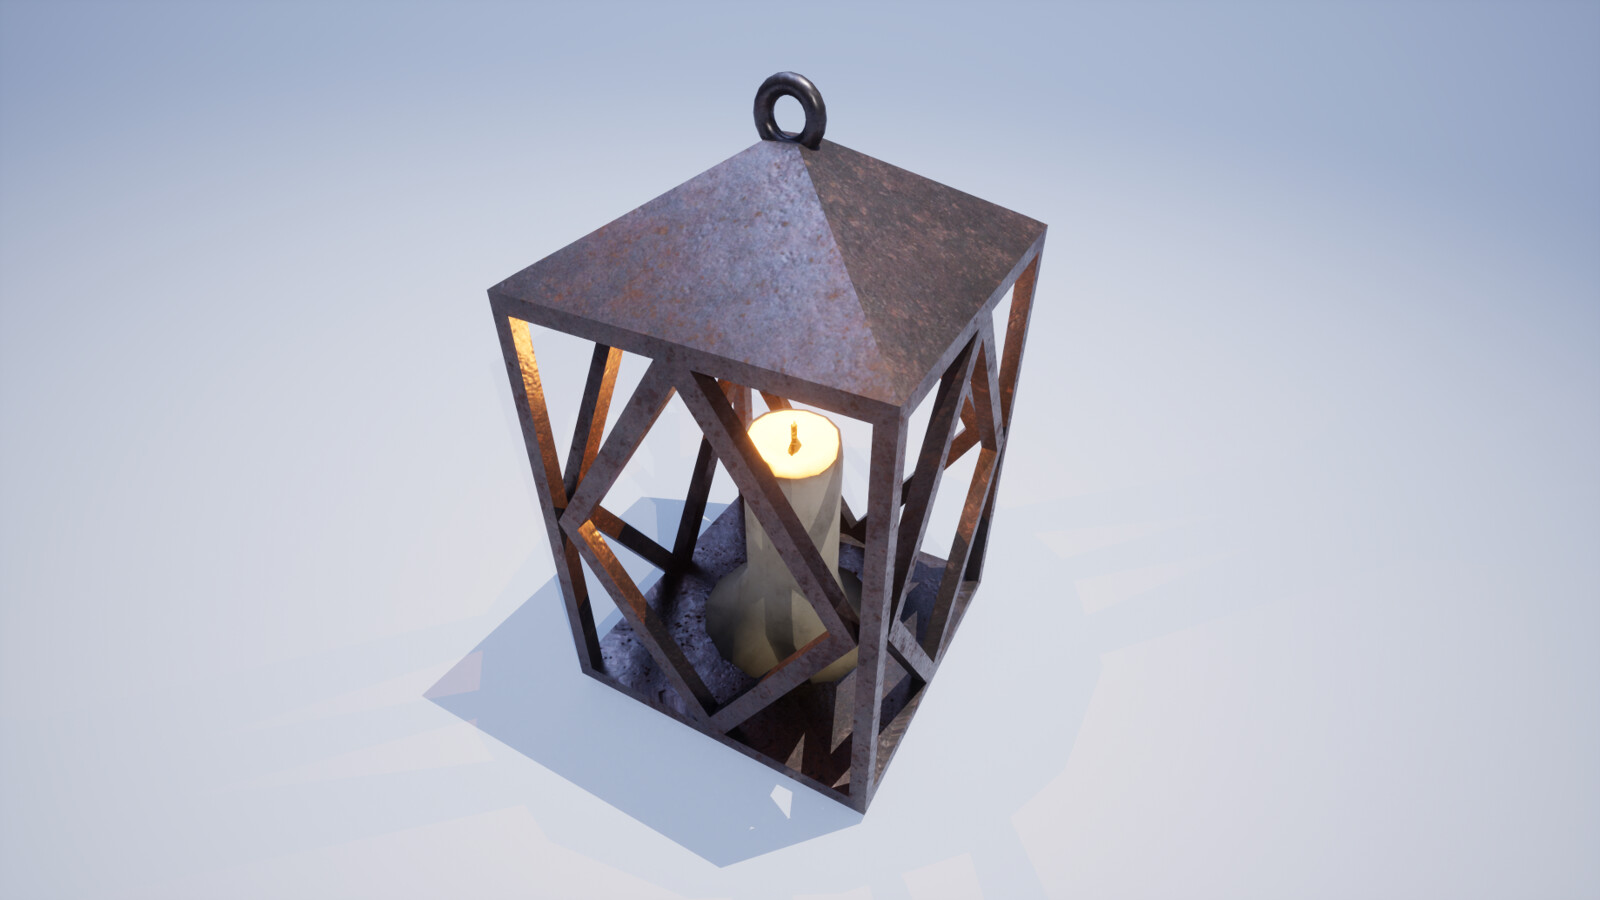 Old fashioned lantern with a lit candle placed in the center